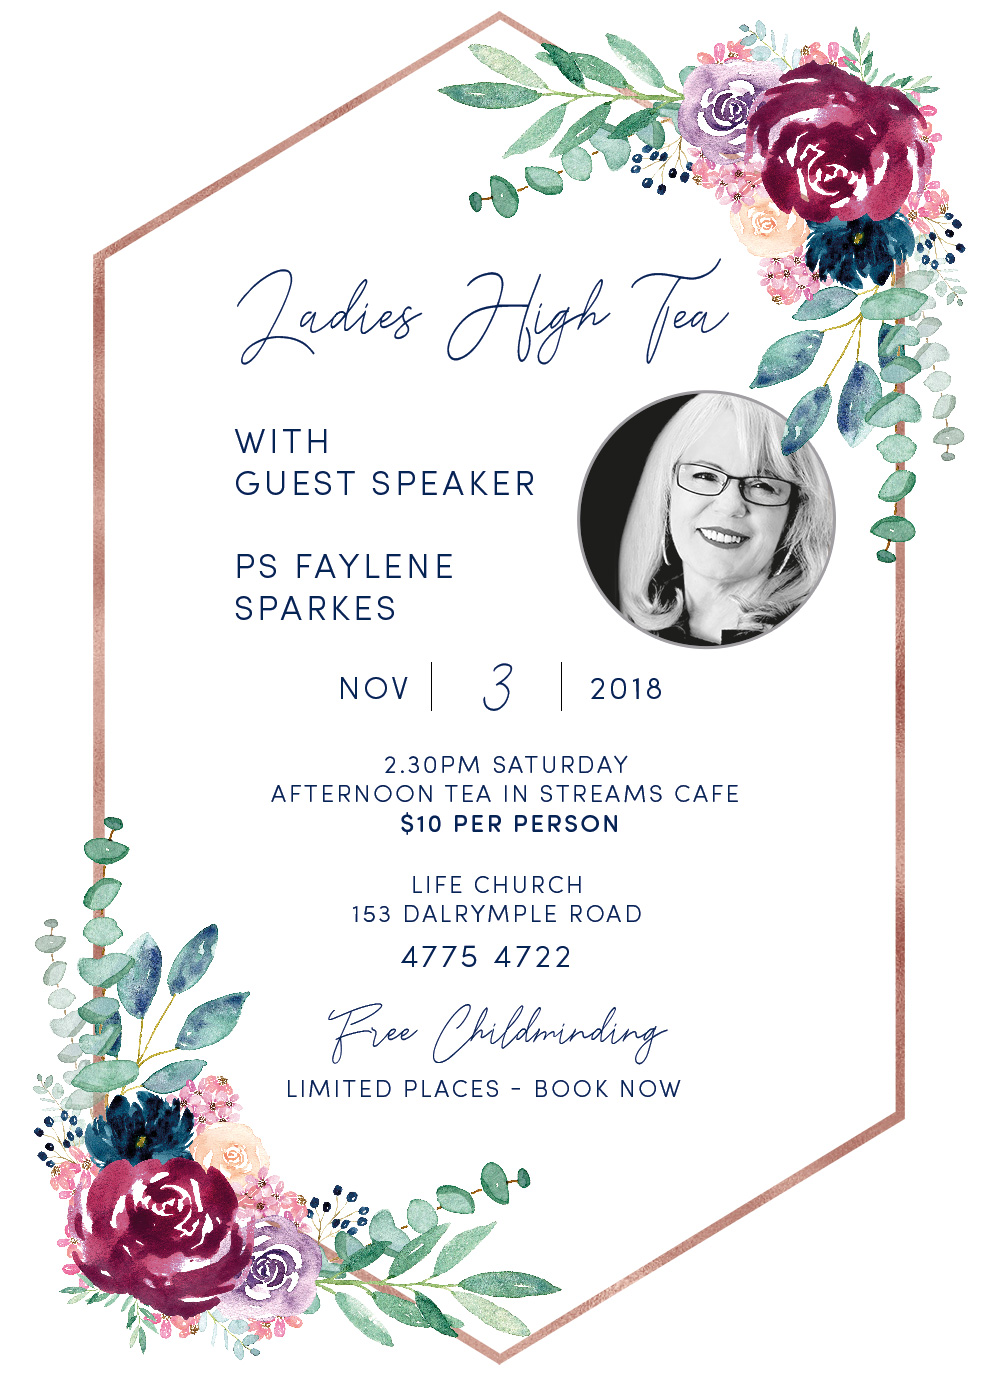 Ladies-High-tea-with-Faylene-edited-2-web-flyer.jpg